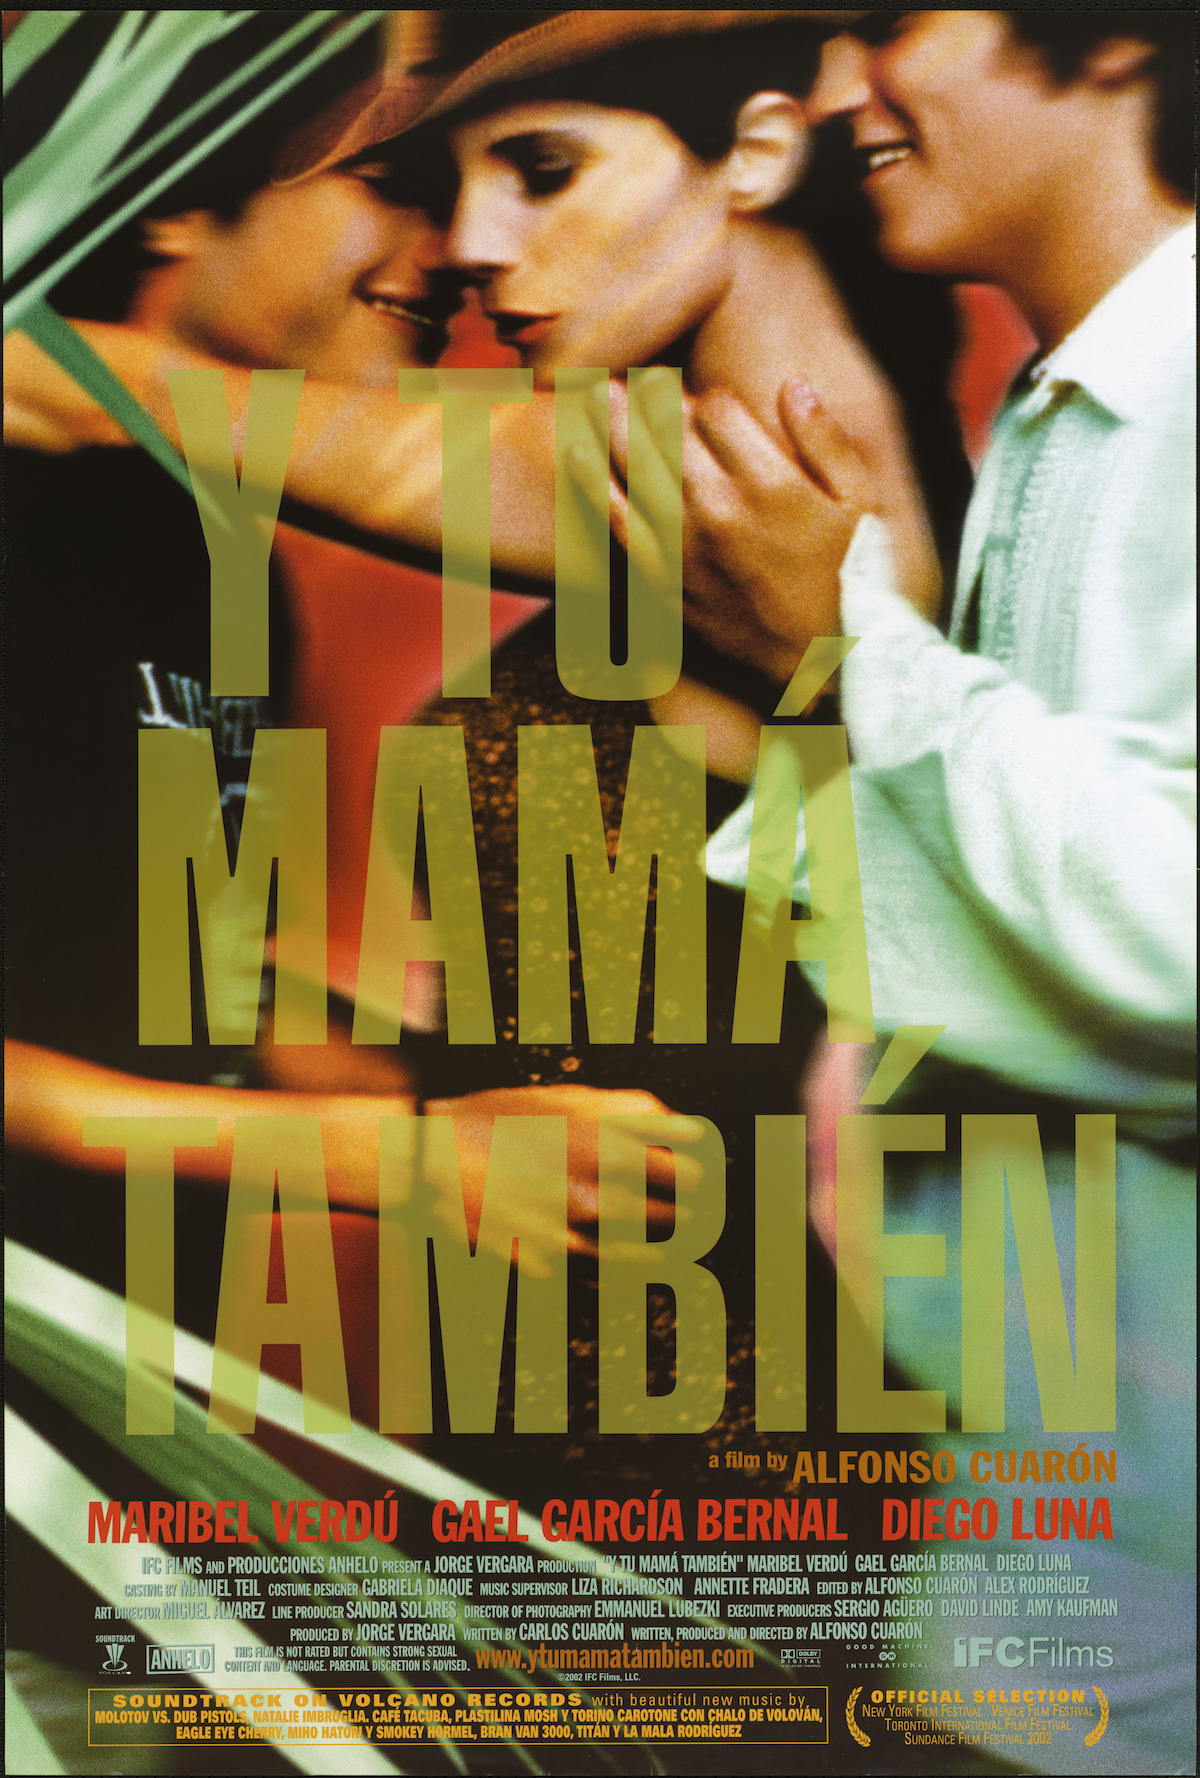 Y Tu Mama Tambien (2001) - Directed by: Alfonso CuaronStarring: Maribel Verdu, Gael Garcia Bernal, Diego LunaRated: R for Strong Sexual Content Involving Teens, Drug Use and LanguageRunning Time: 1 h 46 mTMM Score: 4.5 stars out of 5STRENGTHS: Writing, Acting, Cinematography, DirectingWEAKNESSES: Subject Matter Will Turn Away Some Viewers